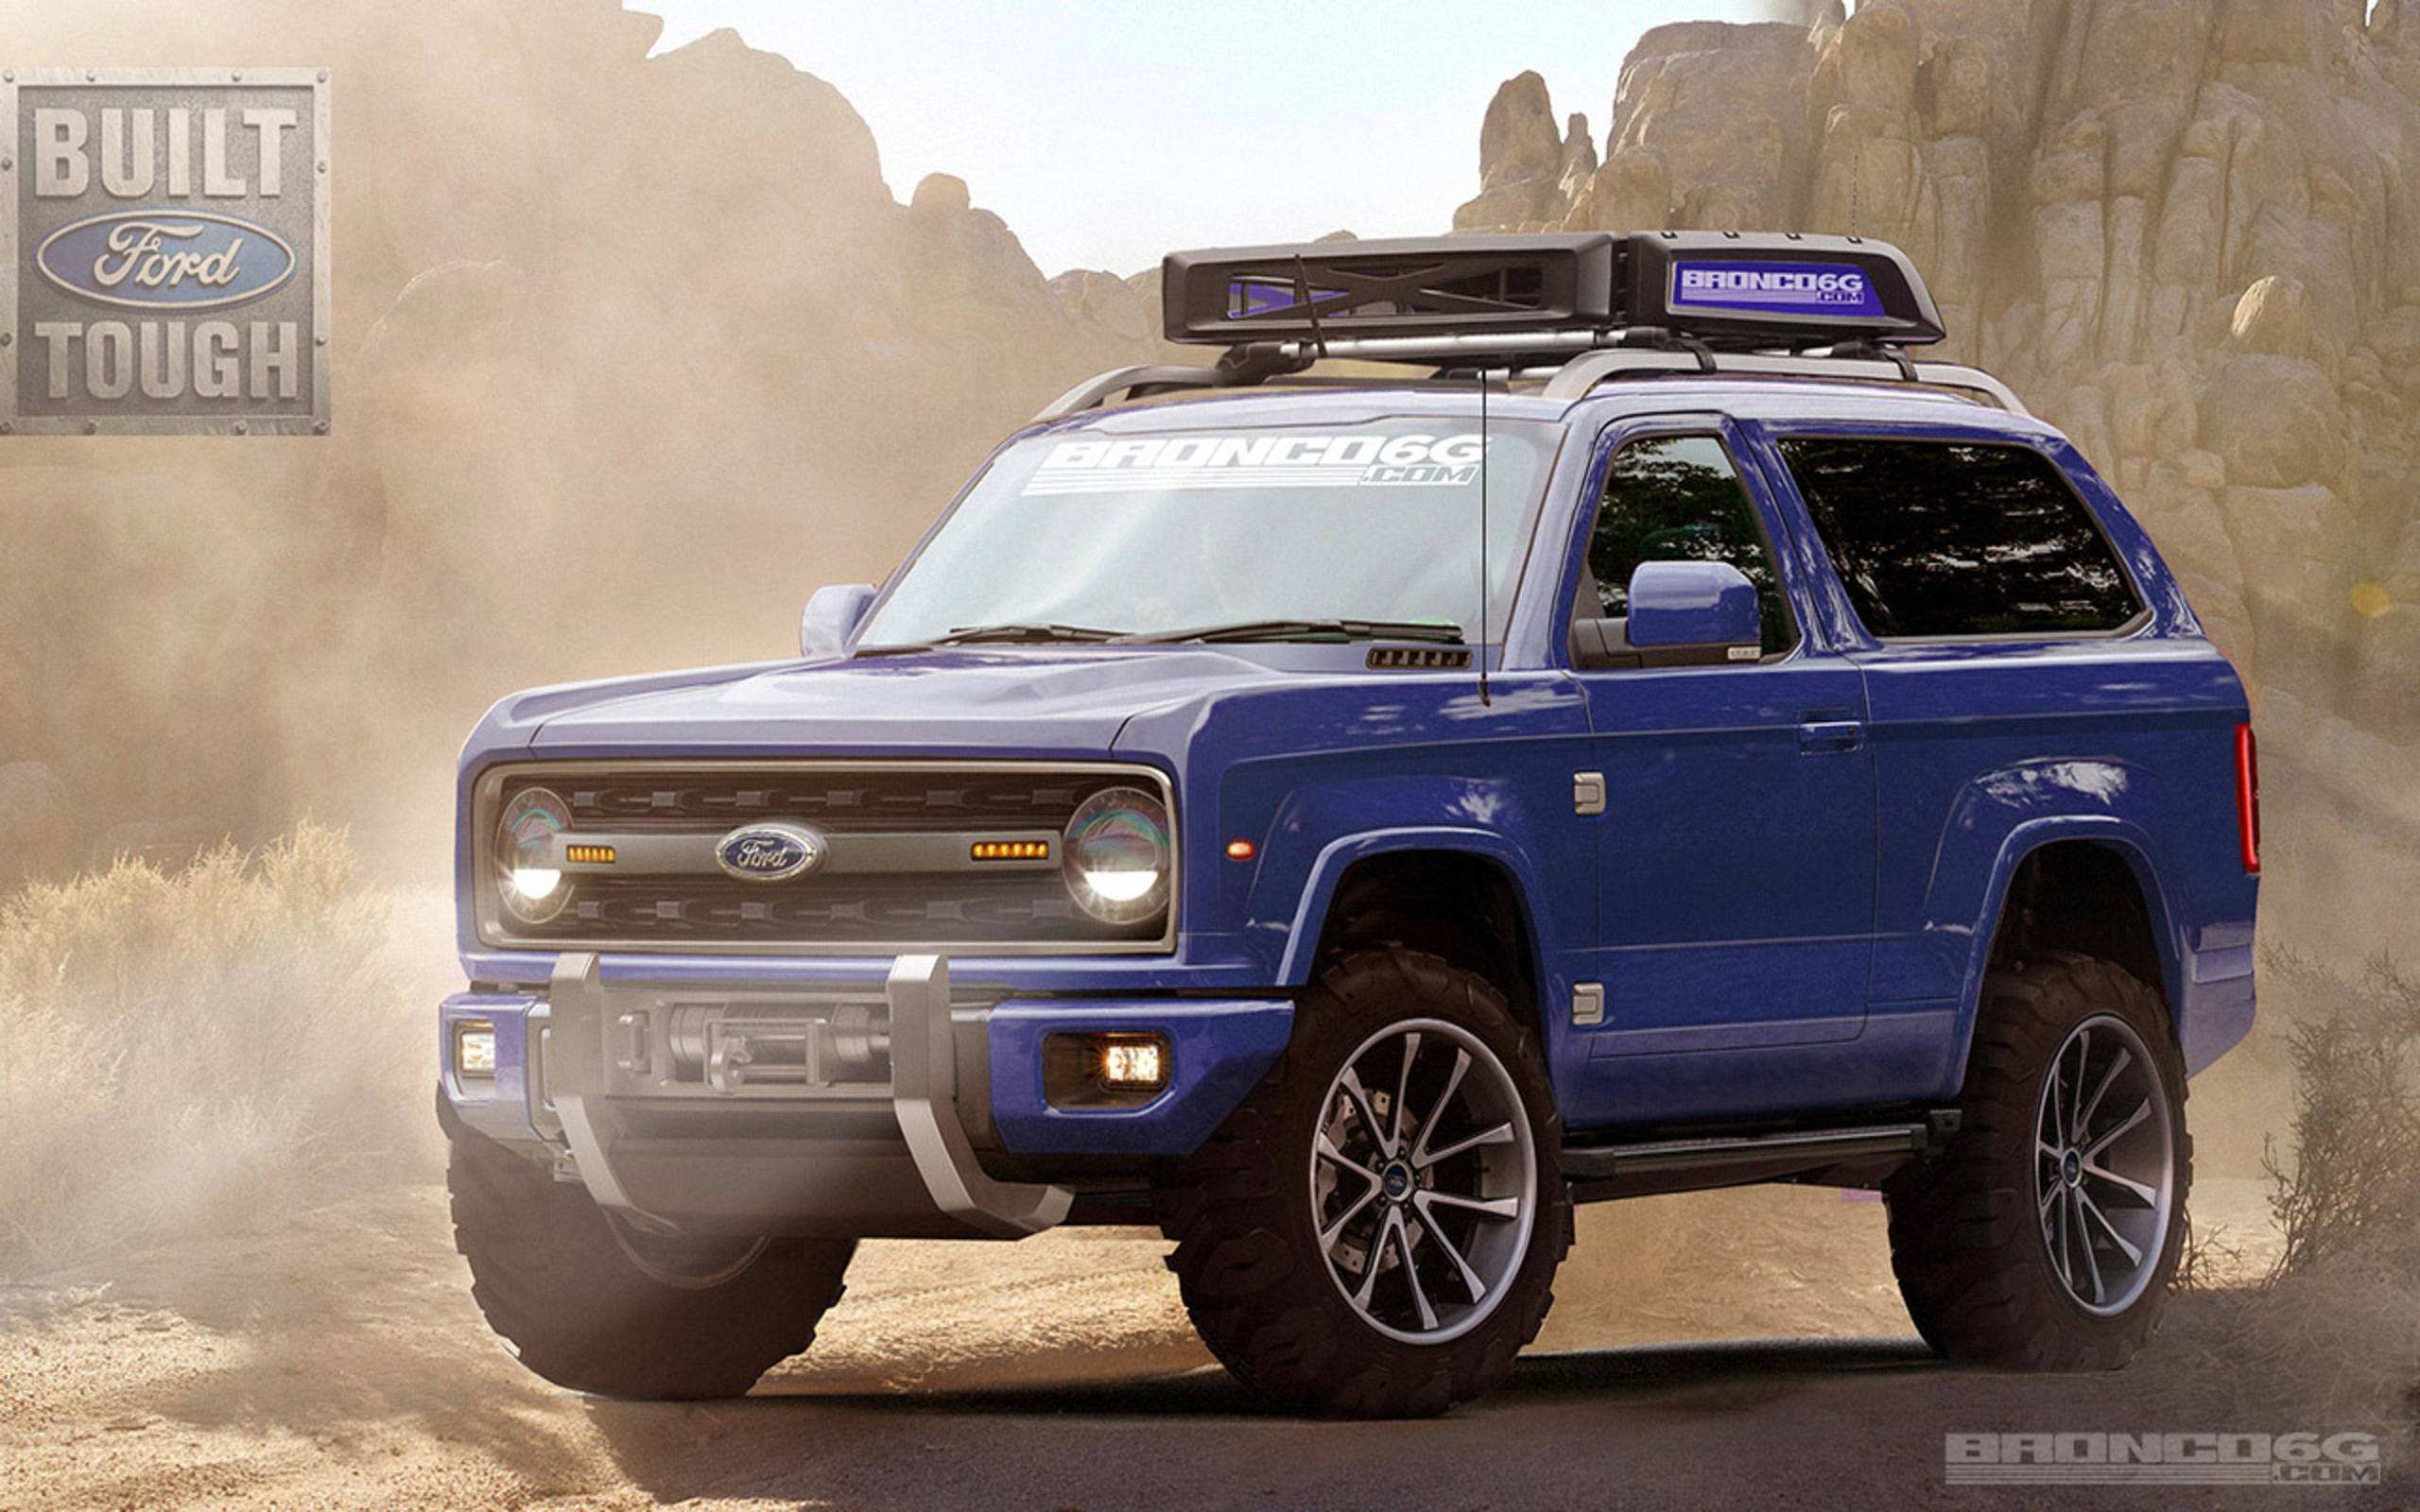 32 The Best Build Your Own 2020 Ford Bronco Release Date And Concept